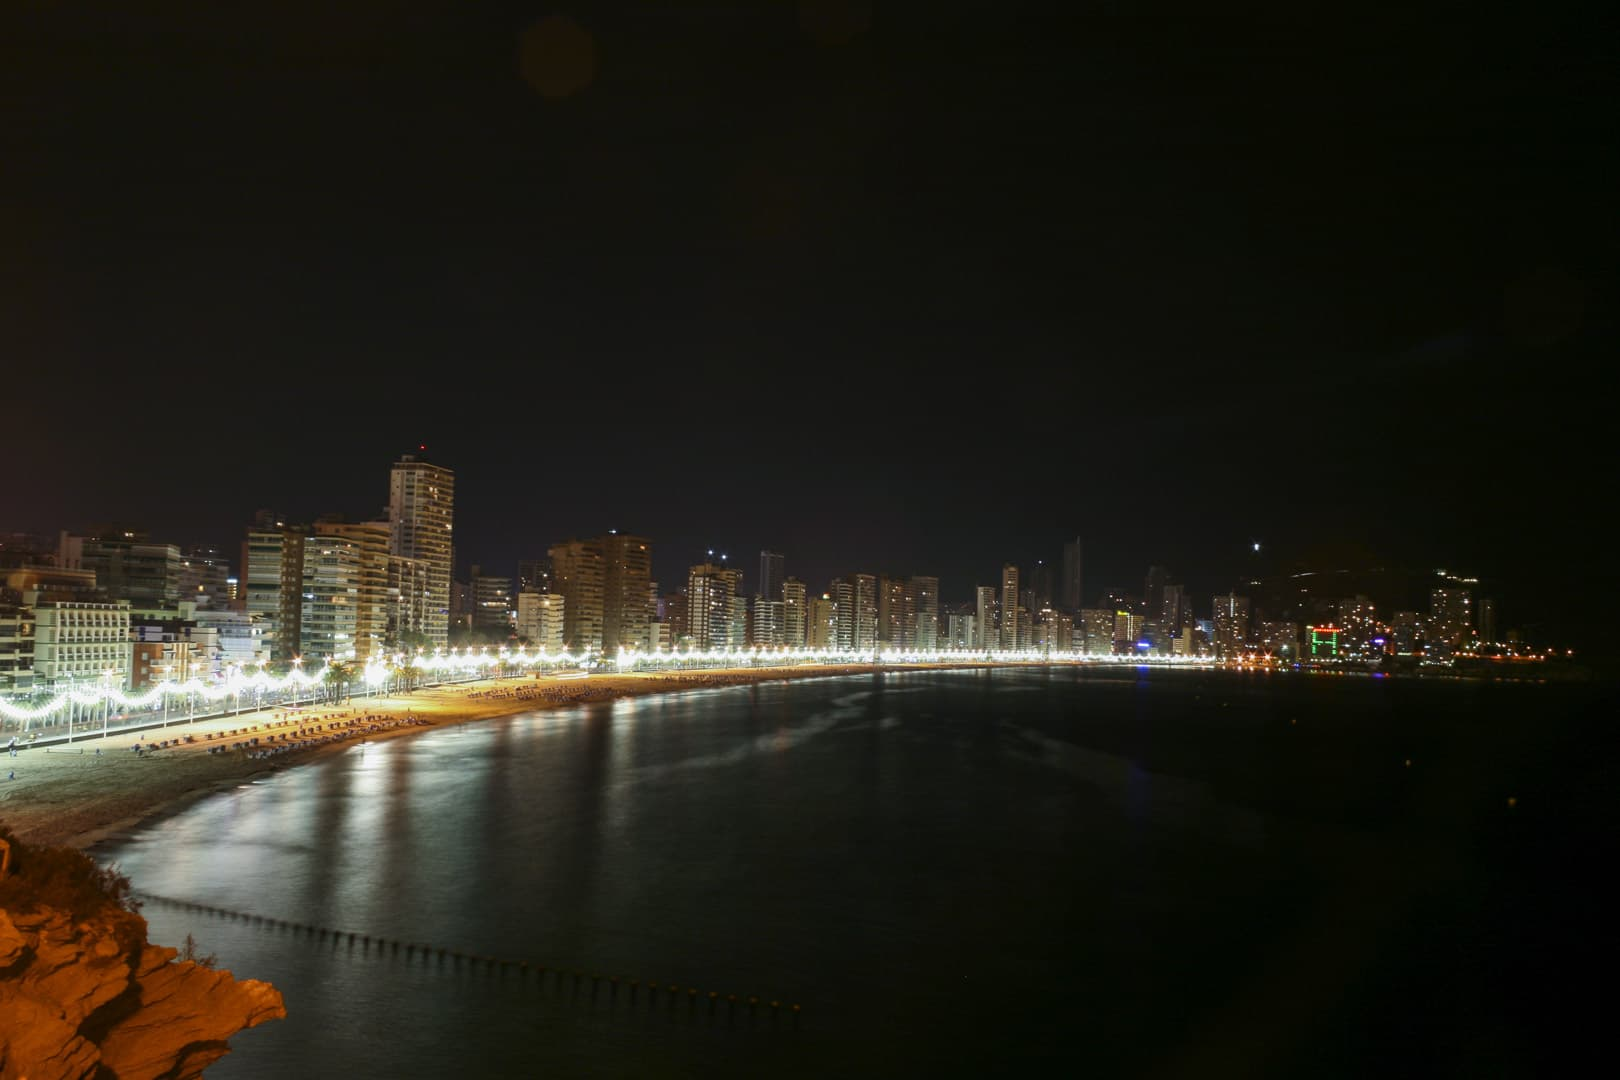 Benidorm (Alicante) – Spain, Main Beach and City Skyline by Night